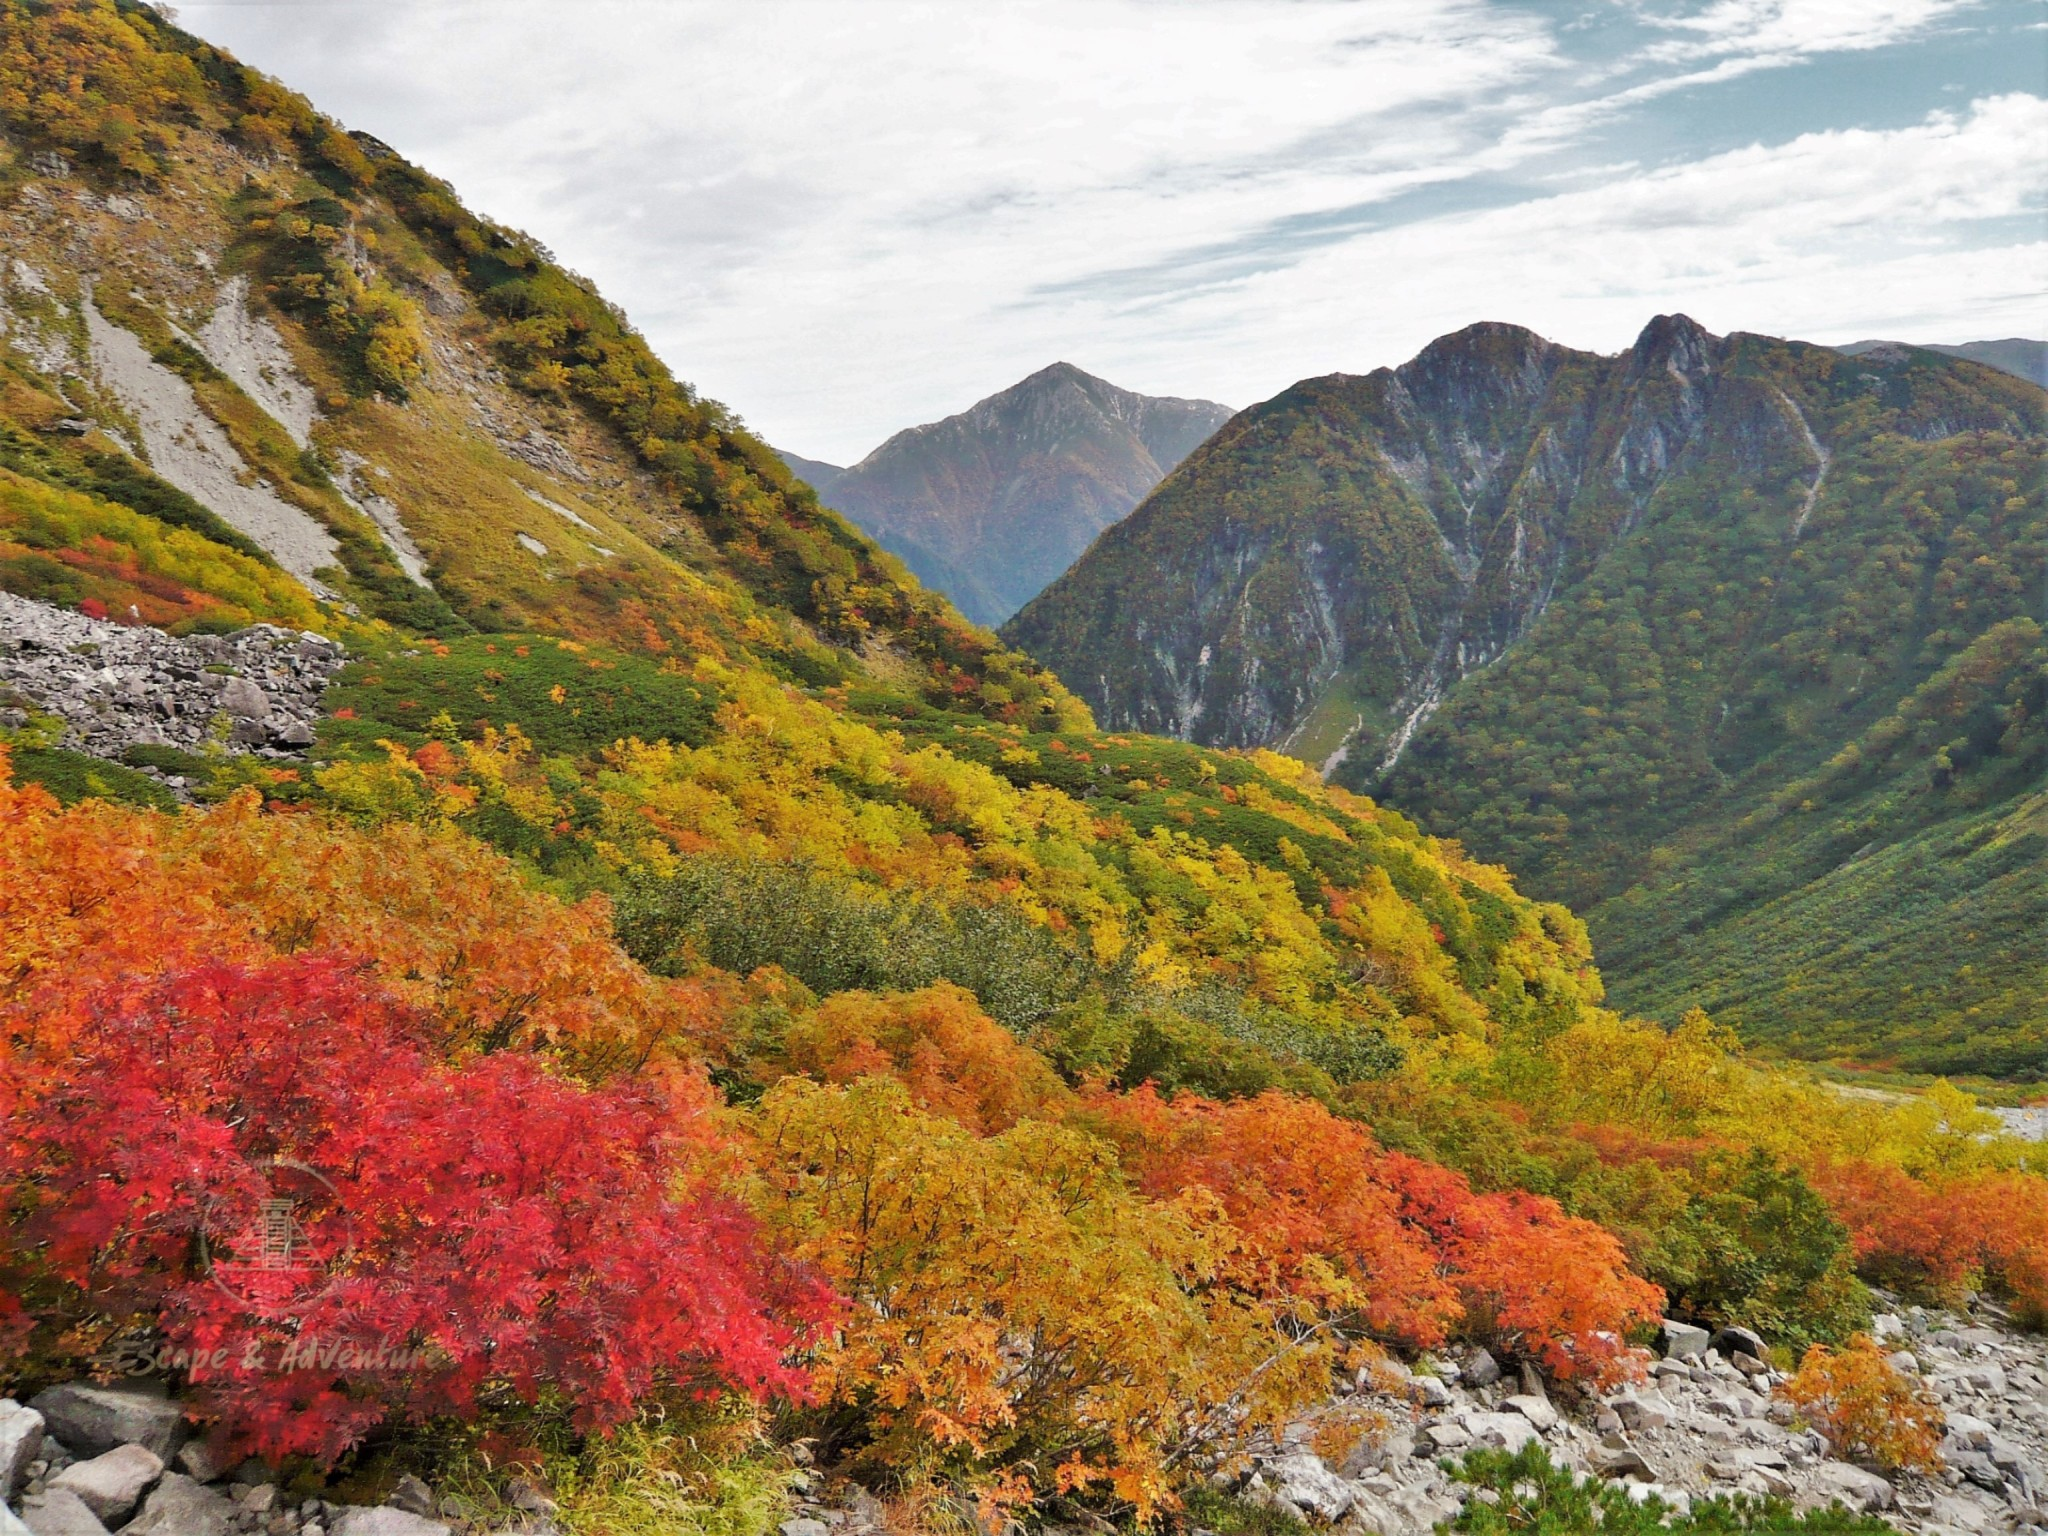 The autumn / fall colours of the bushes and trees of a pristine mountain environment, representing conservation and protection of the natural environment, and sustainable tourism.